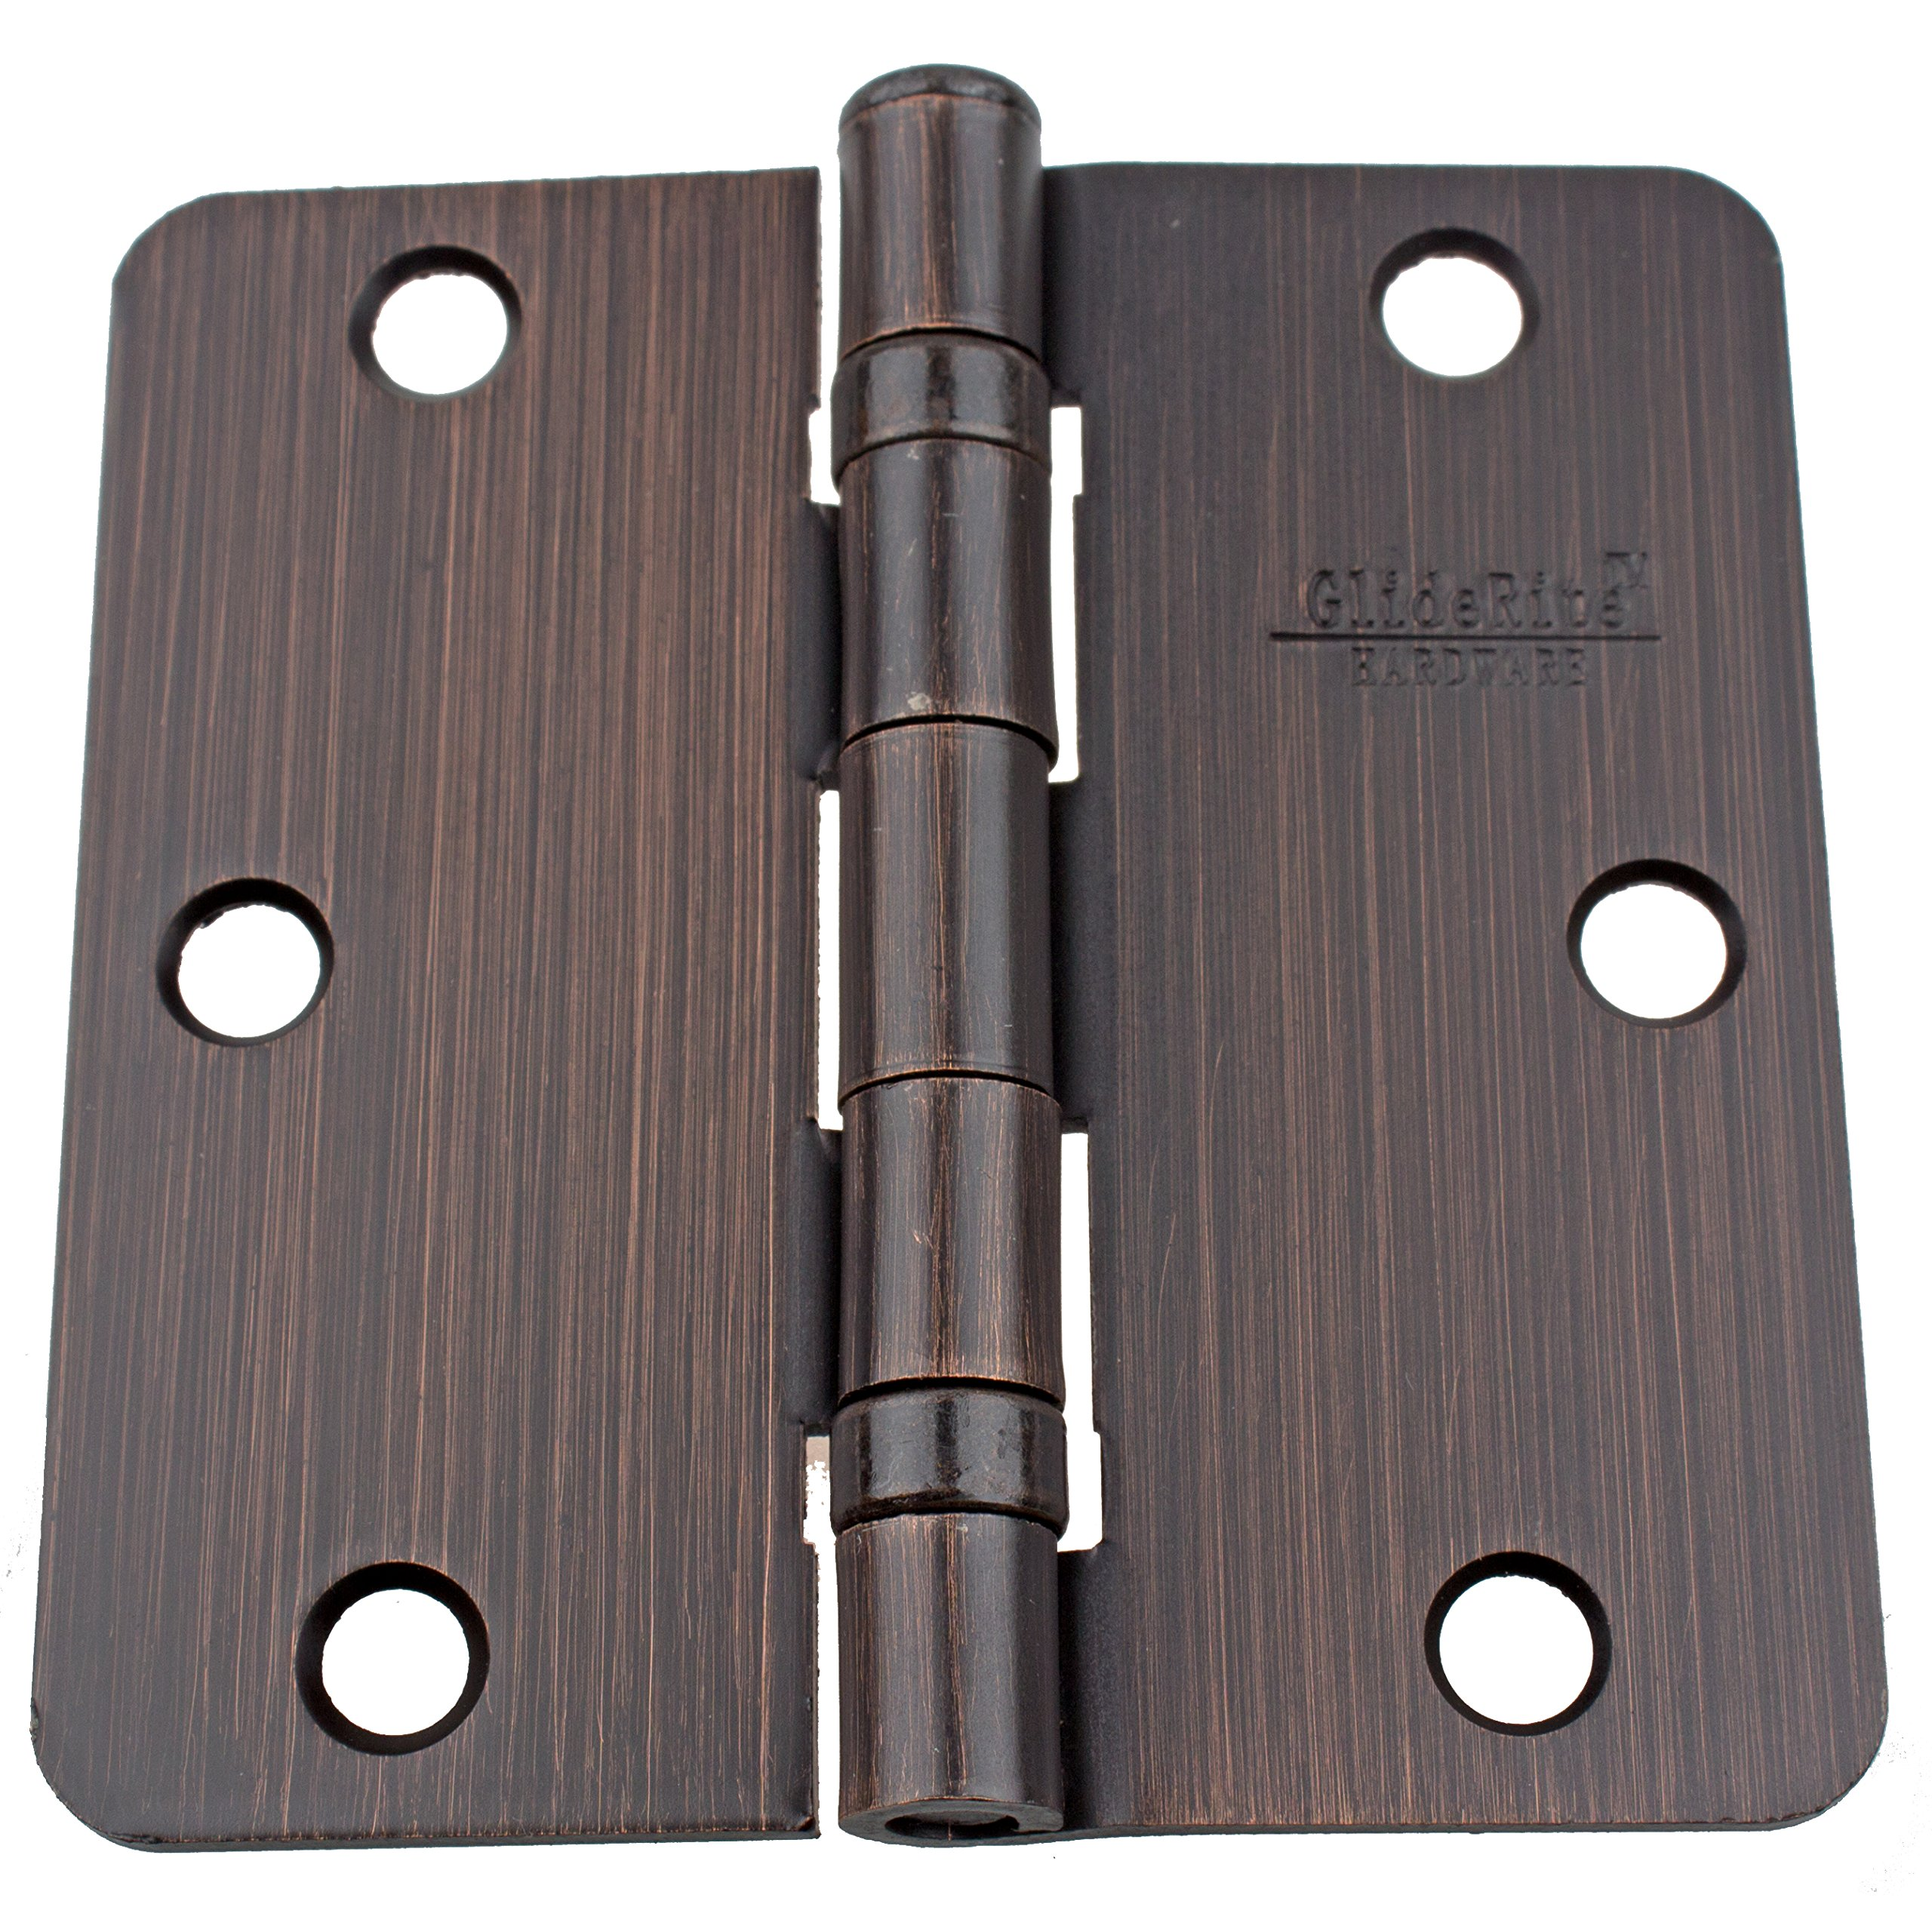 GlideRite Hardware 3514-2BB-ORB-30 Ball Bearing 3.5 inch Steel Door Hinges 0.25 inch Radius Corners Oil Rubbed Bronze Finish 30 Pack